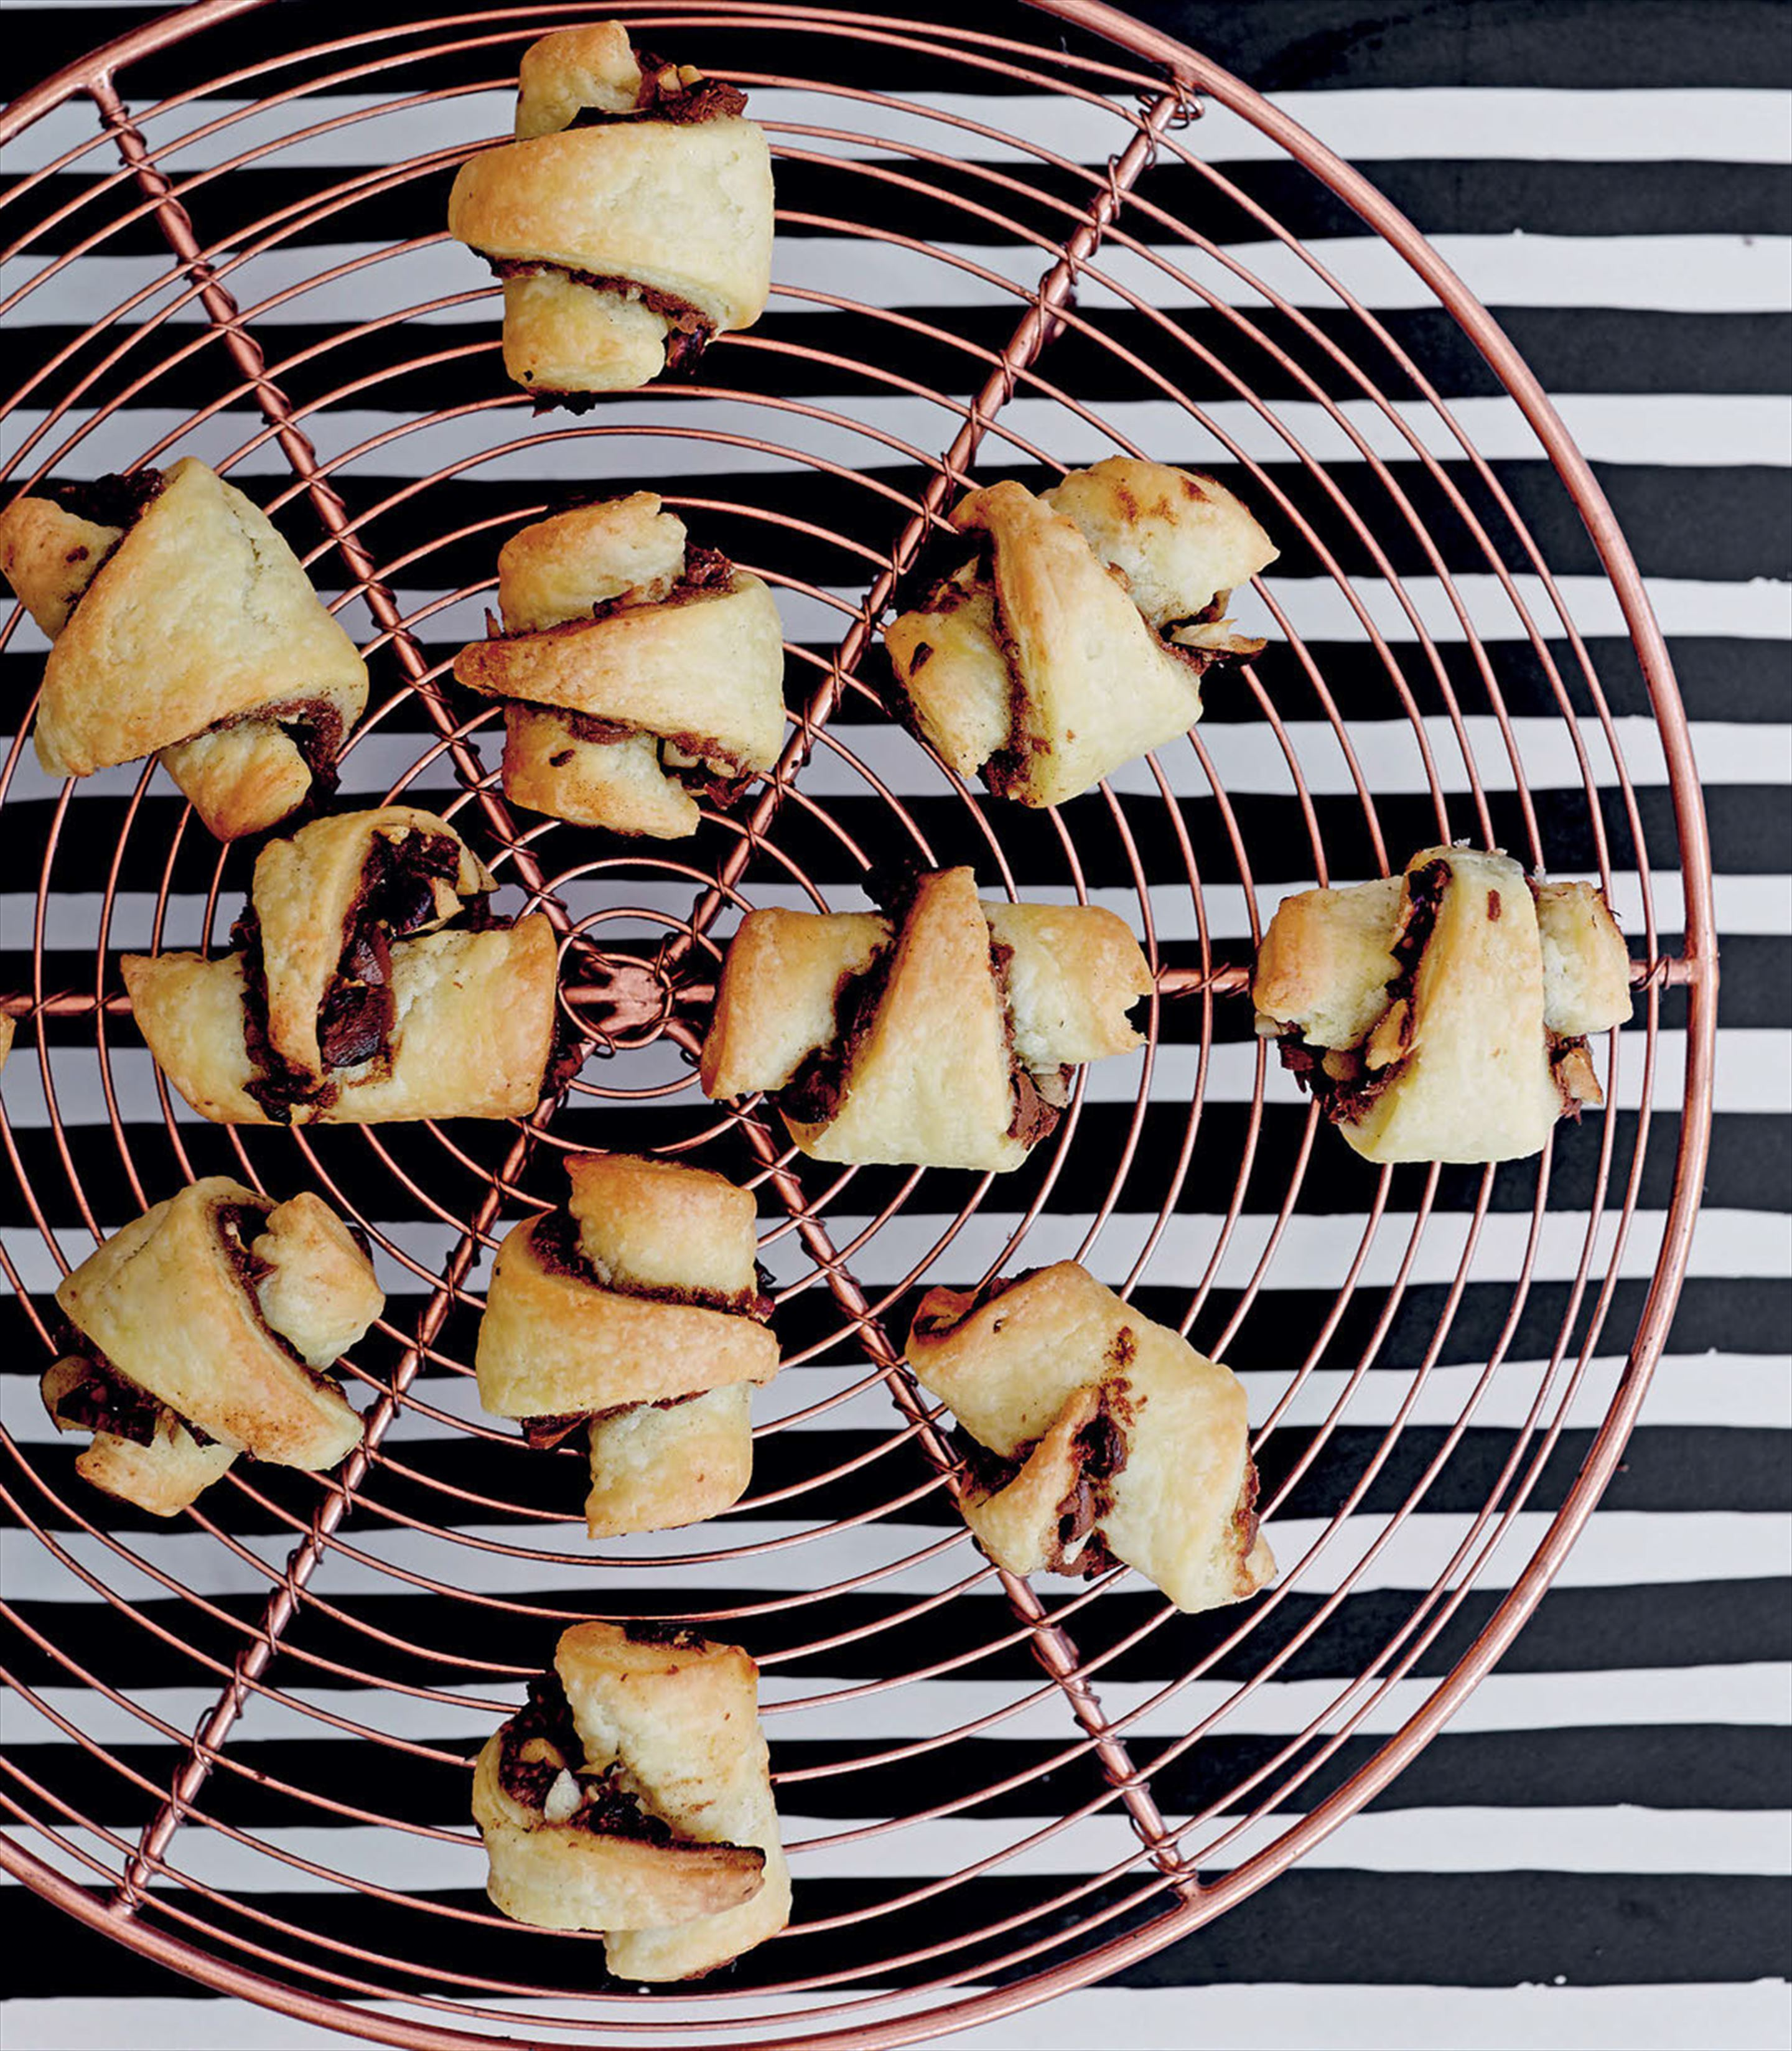 Chocolate–hazelnut rugelach